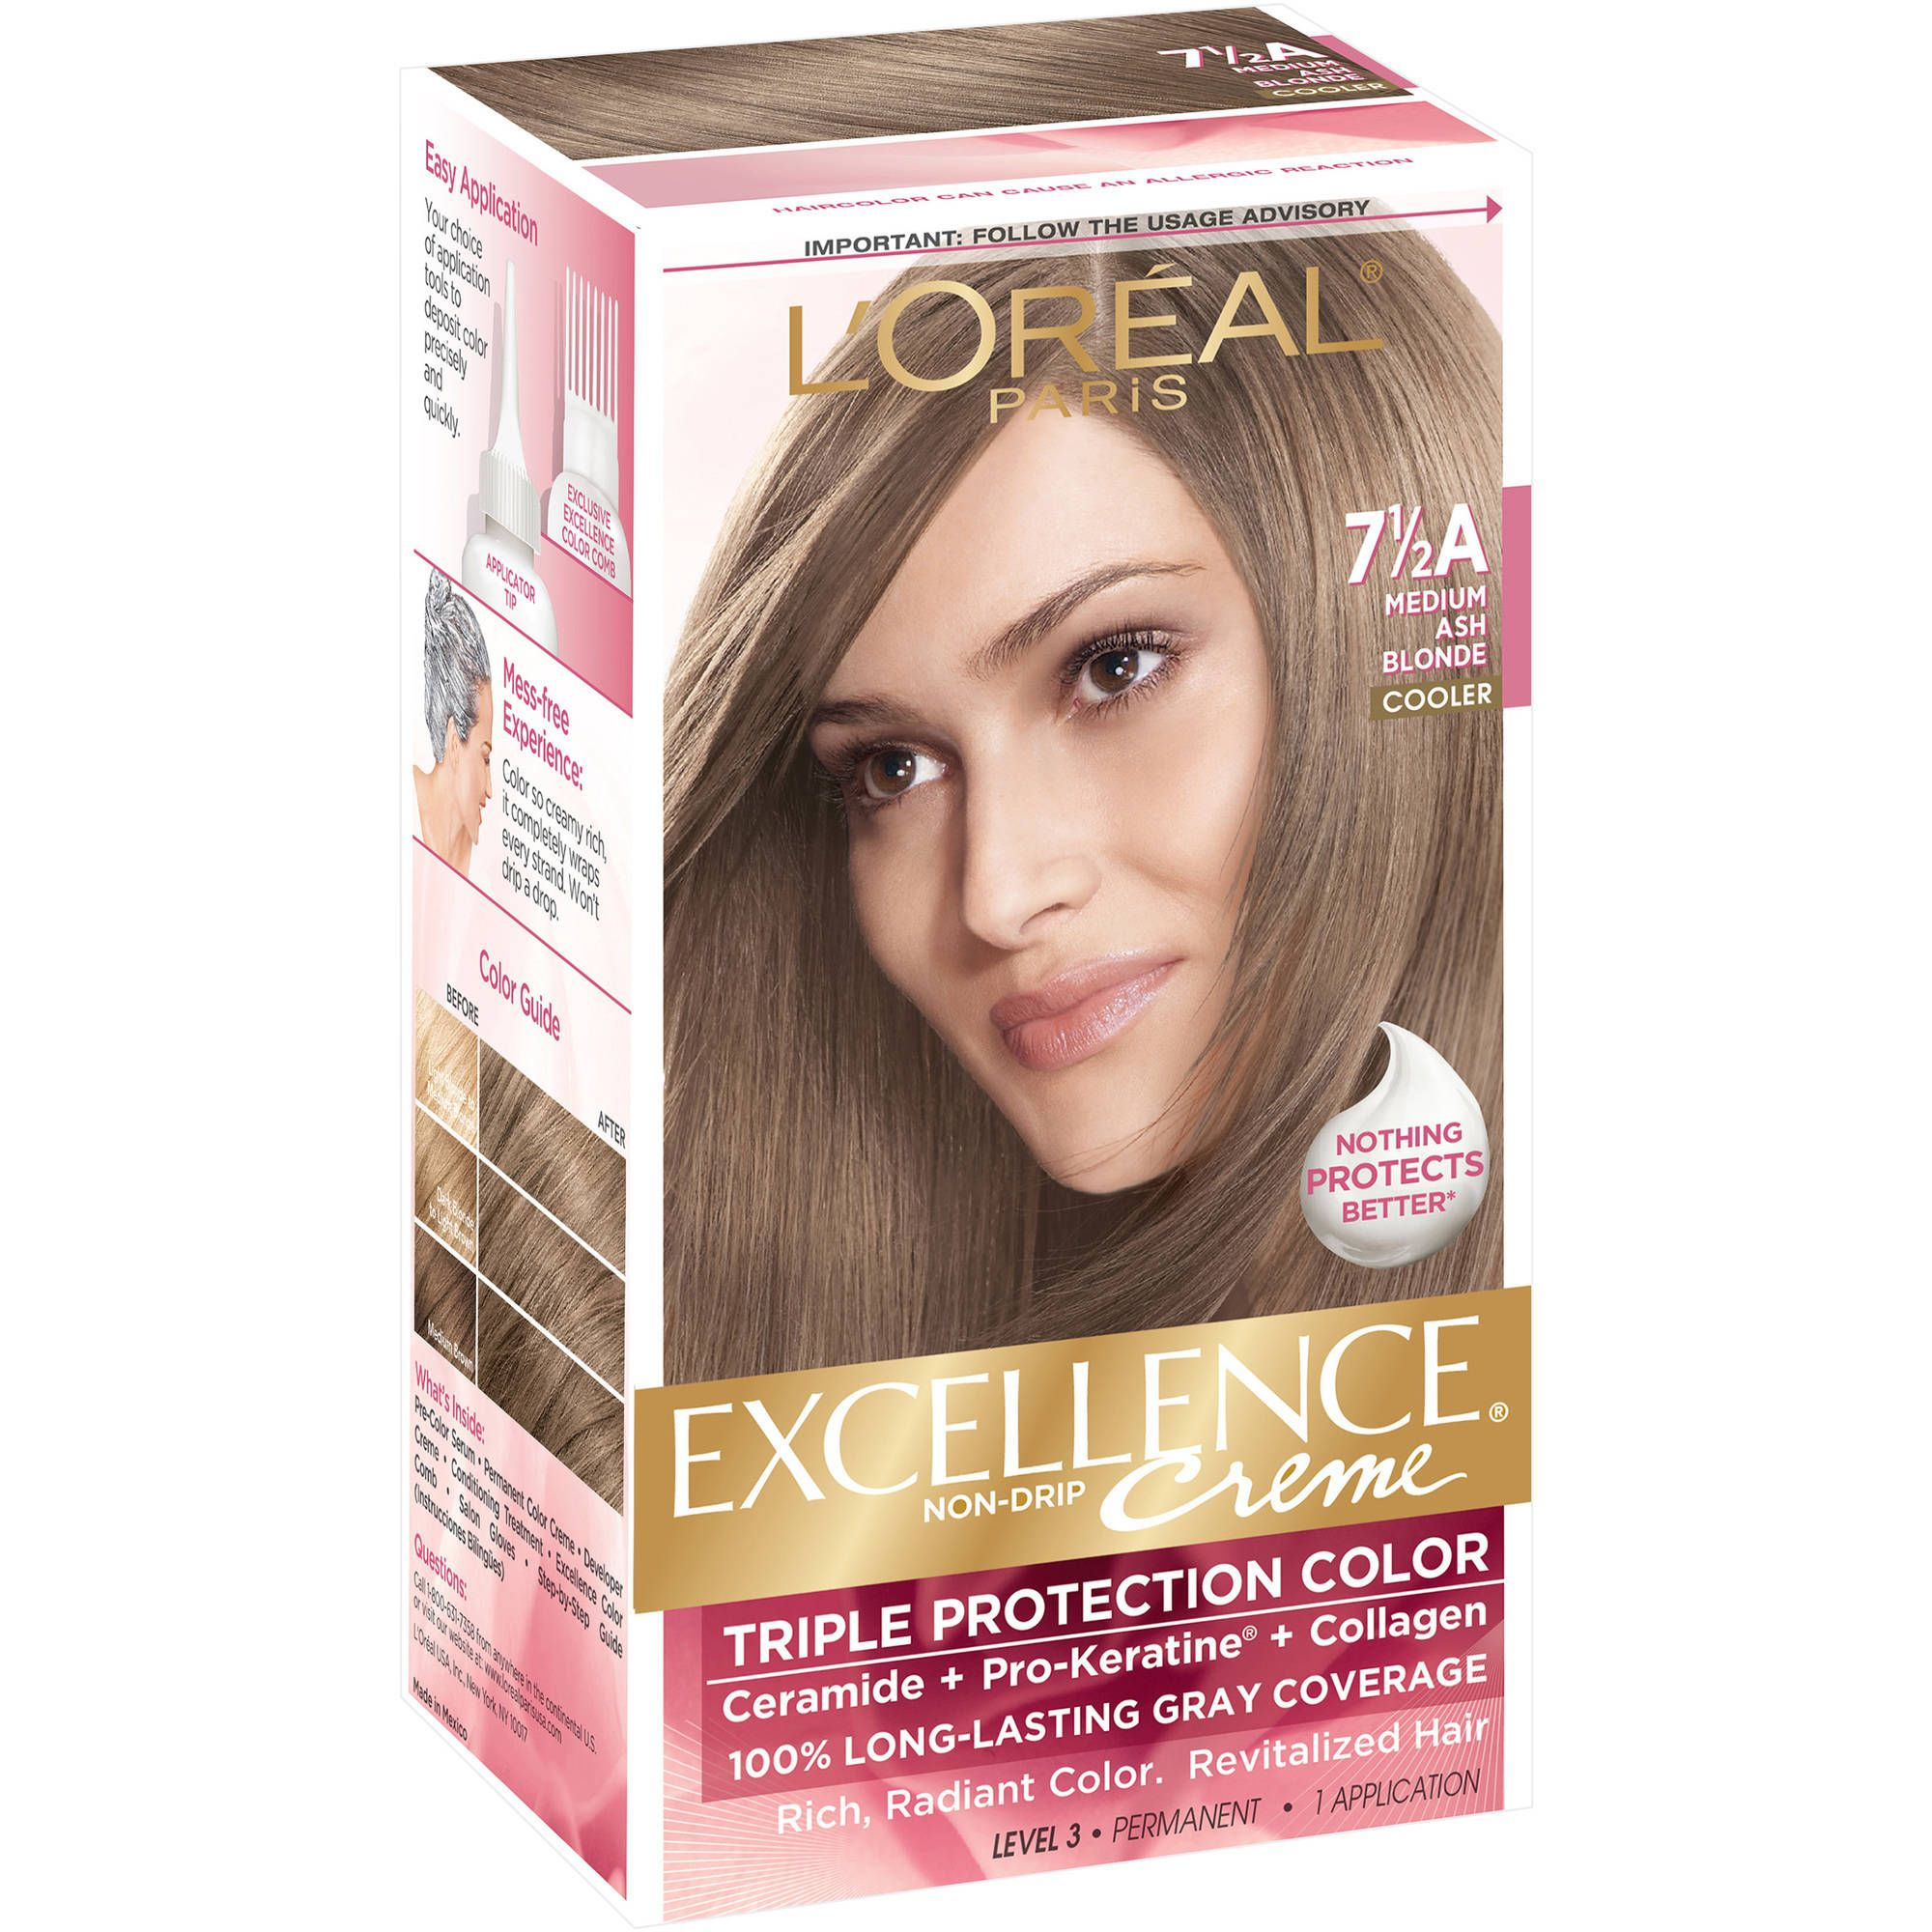 L Oreal Paris Excellence Creme Paris Oreal Creme With Images